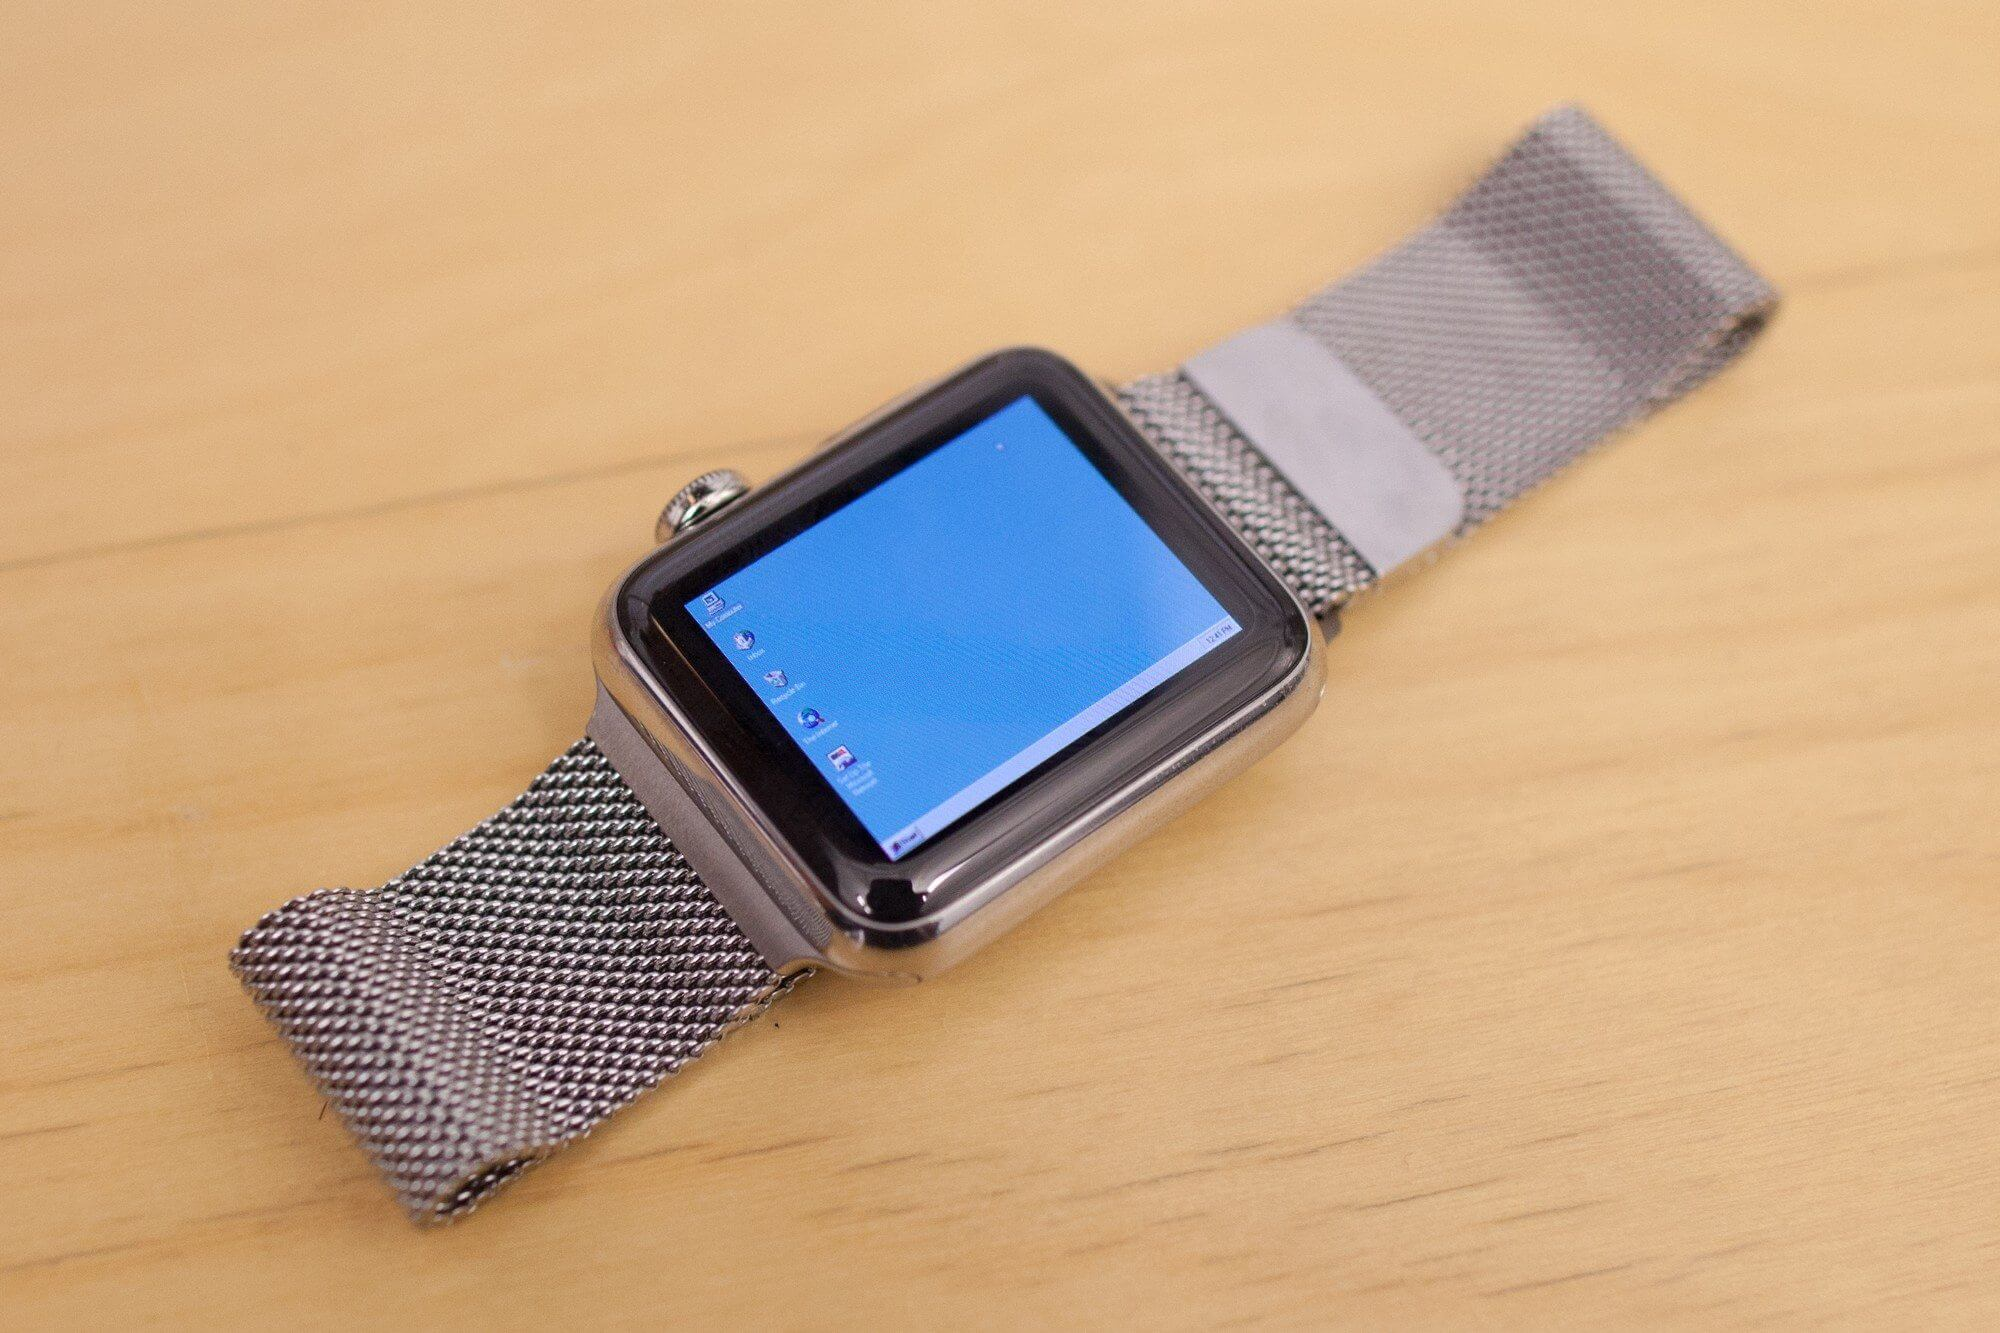 apple watch windows 95 - Veja o Windows 95 rodando em um Apple Watch